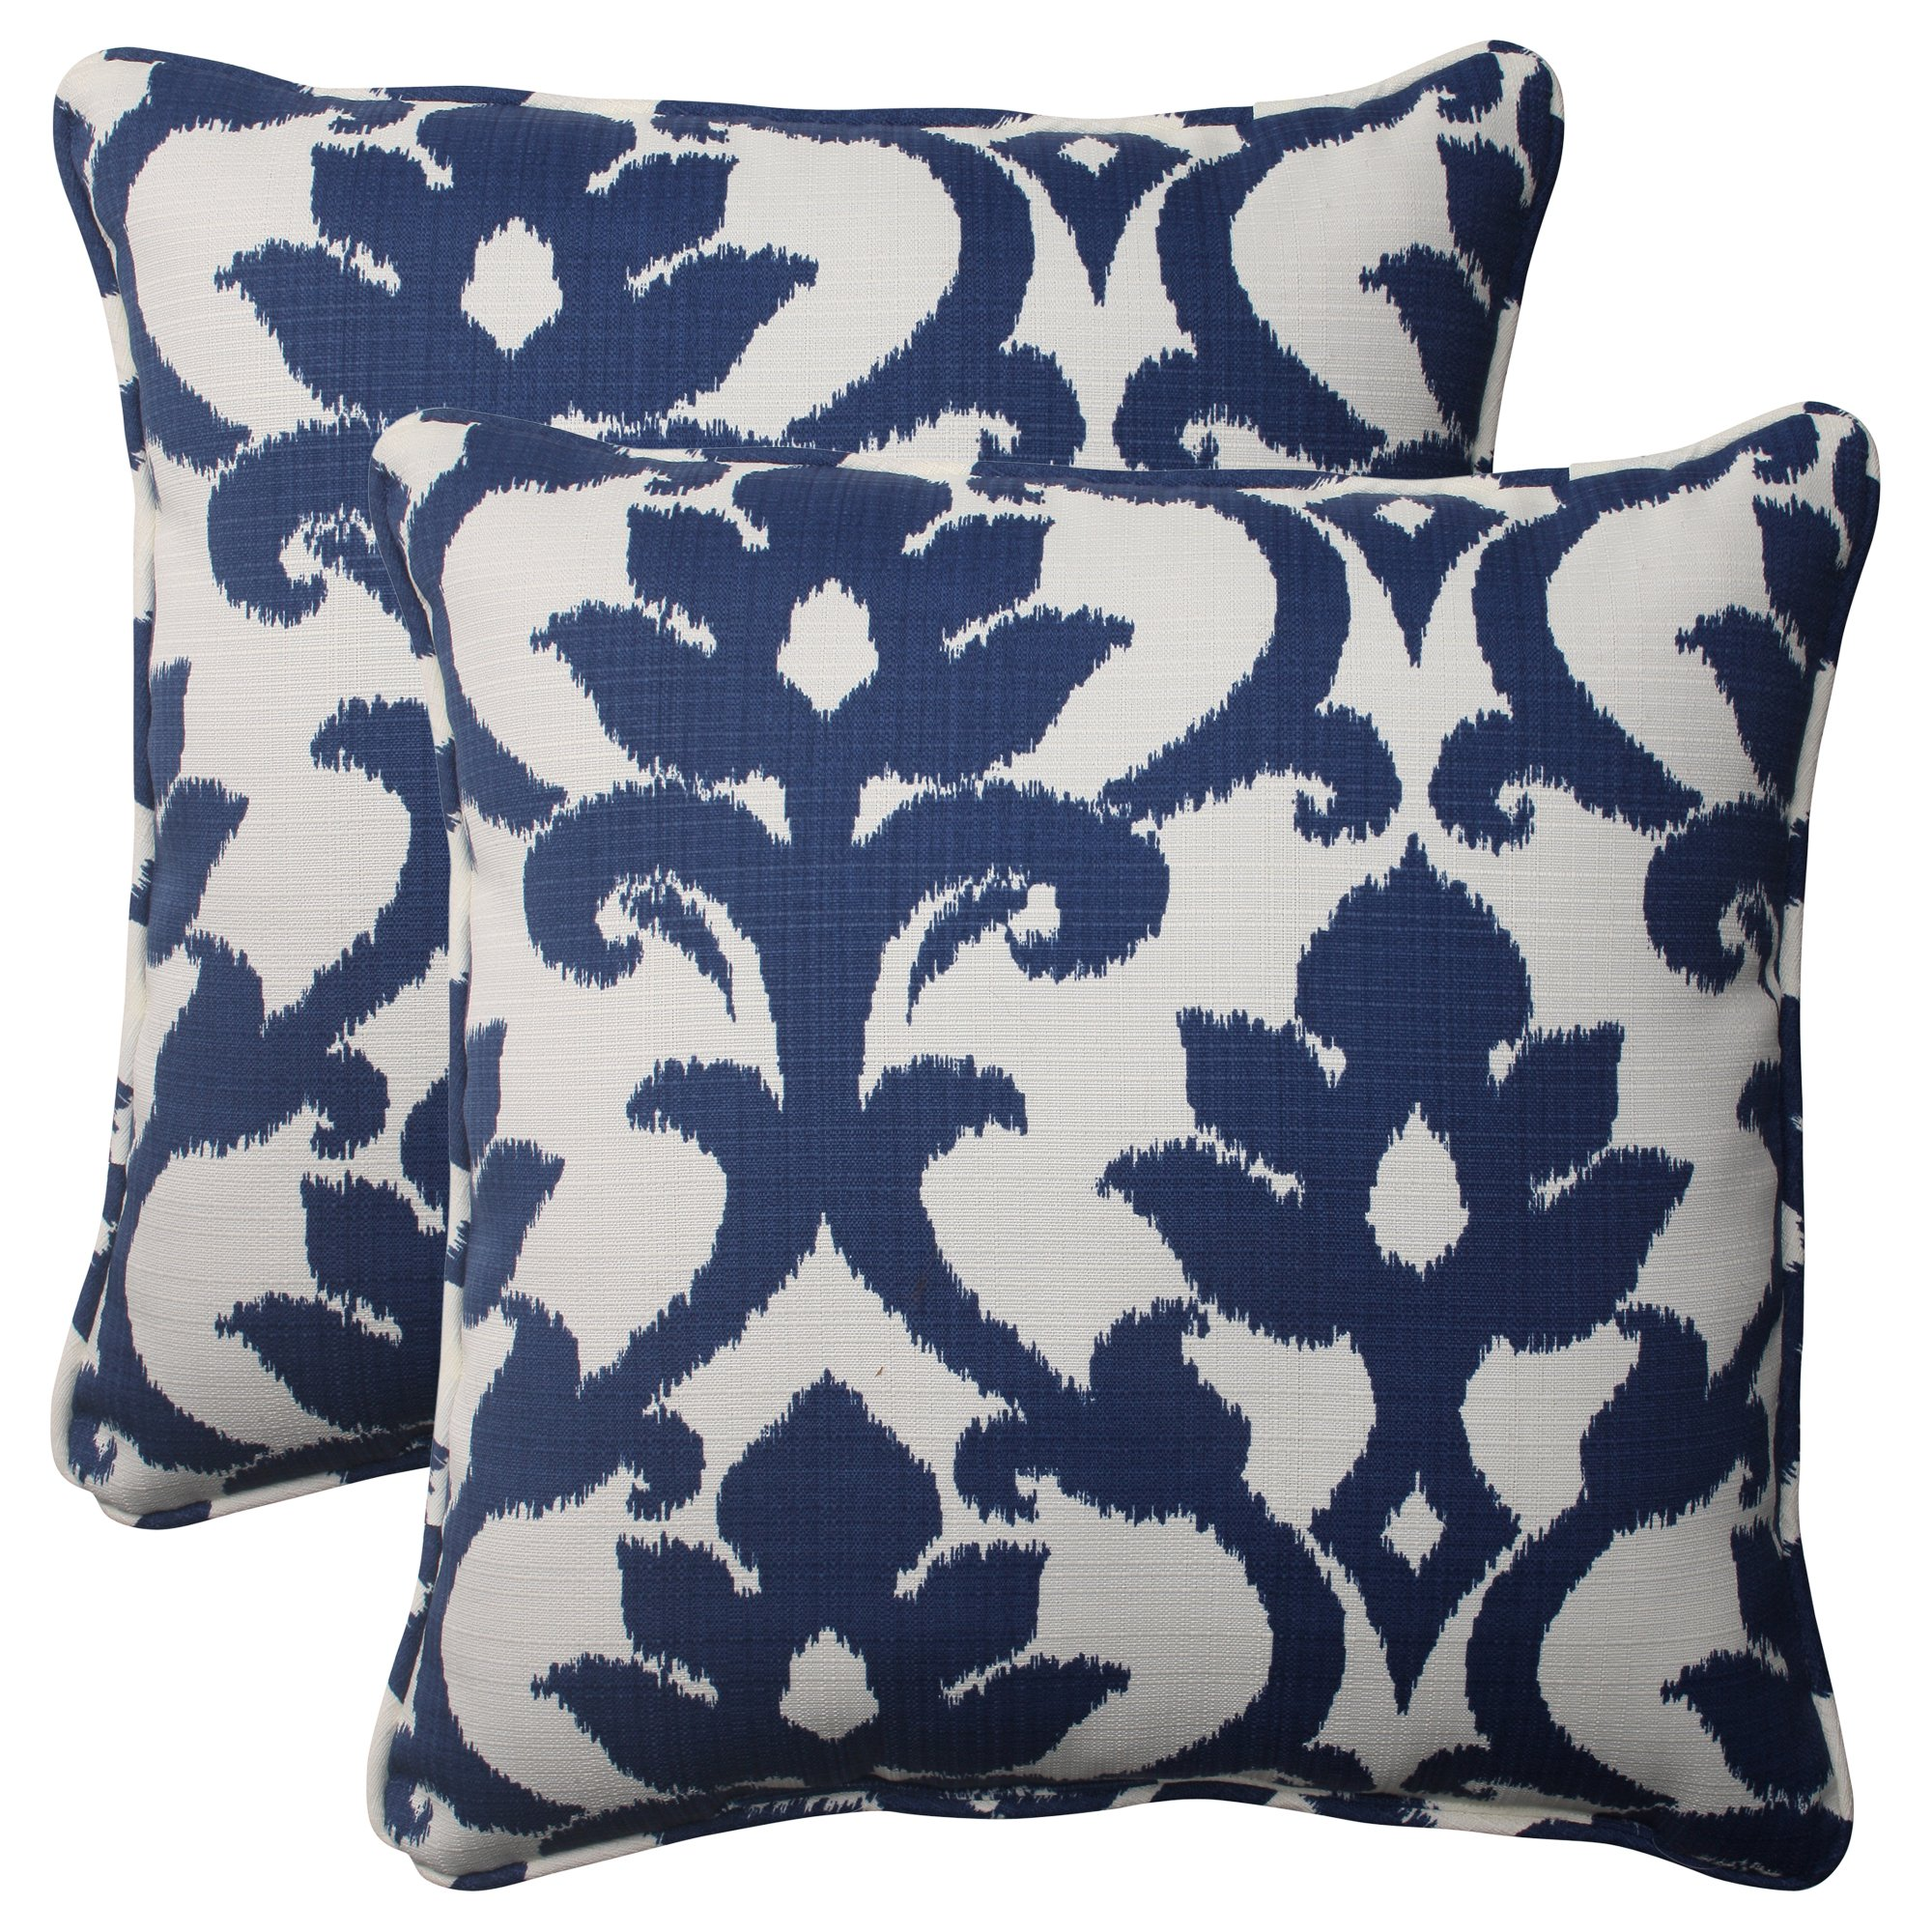 Pillow Perfect Outdoor Bosco Corded Throw Pillow, 18.5-Inch, Navy, Set of 2